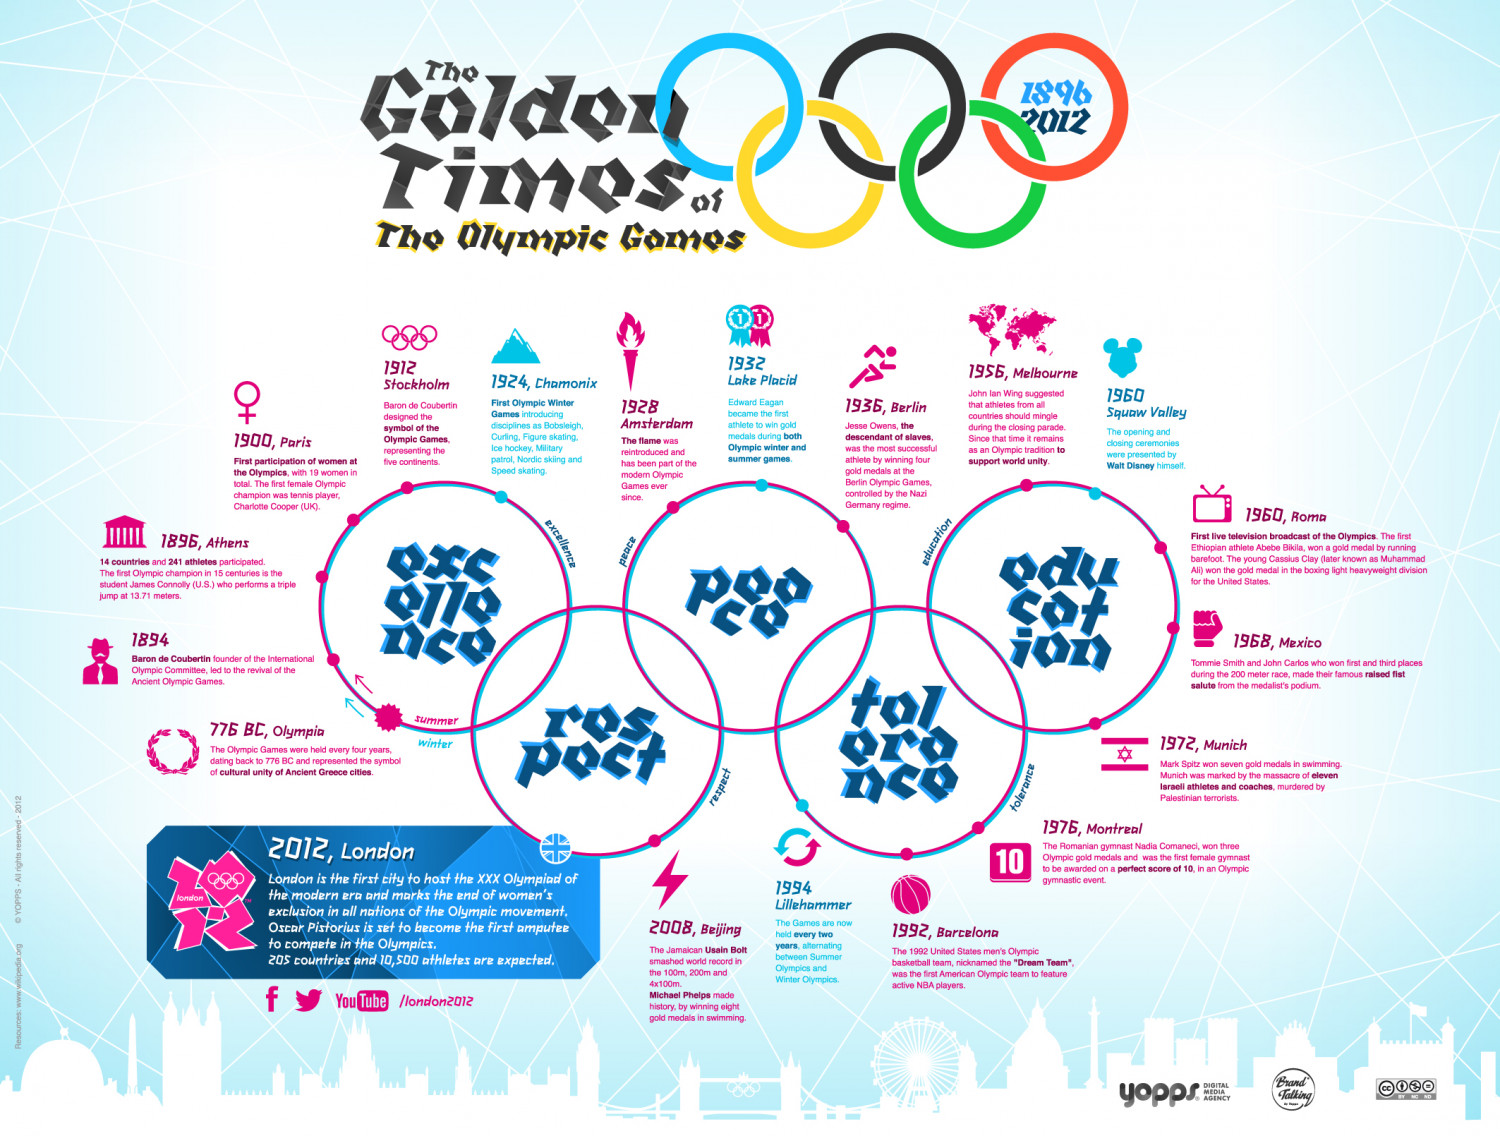 The Golden Times of the Olympic Games Infographic